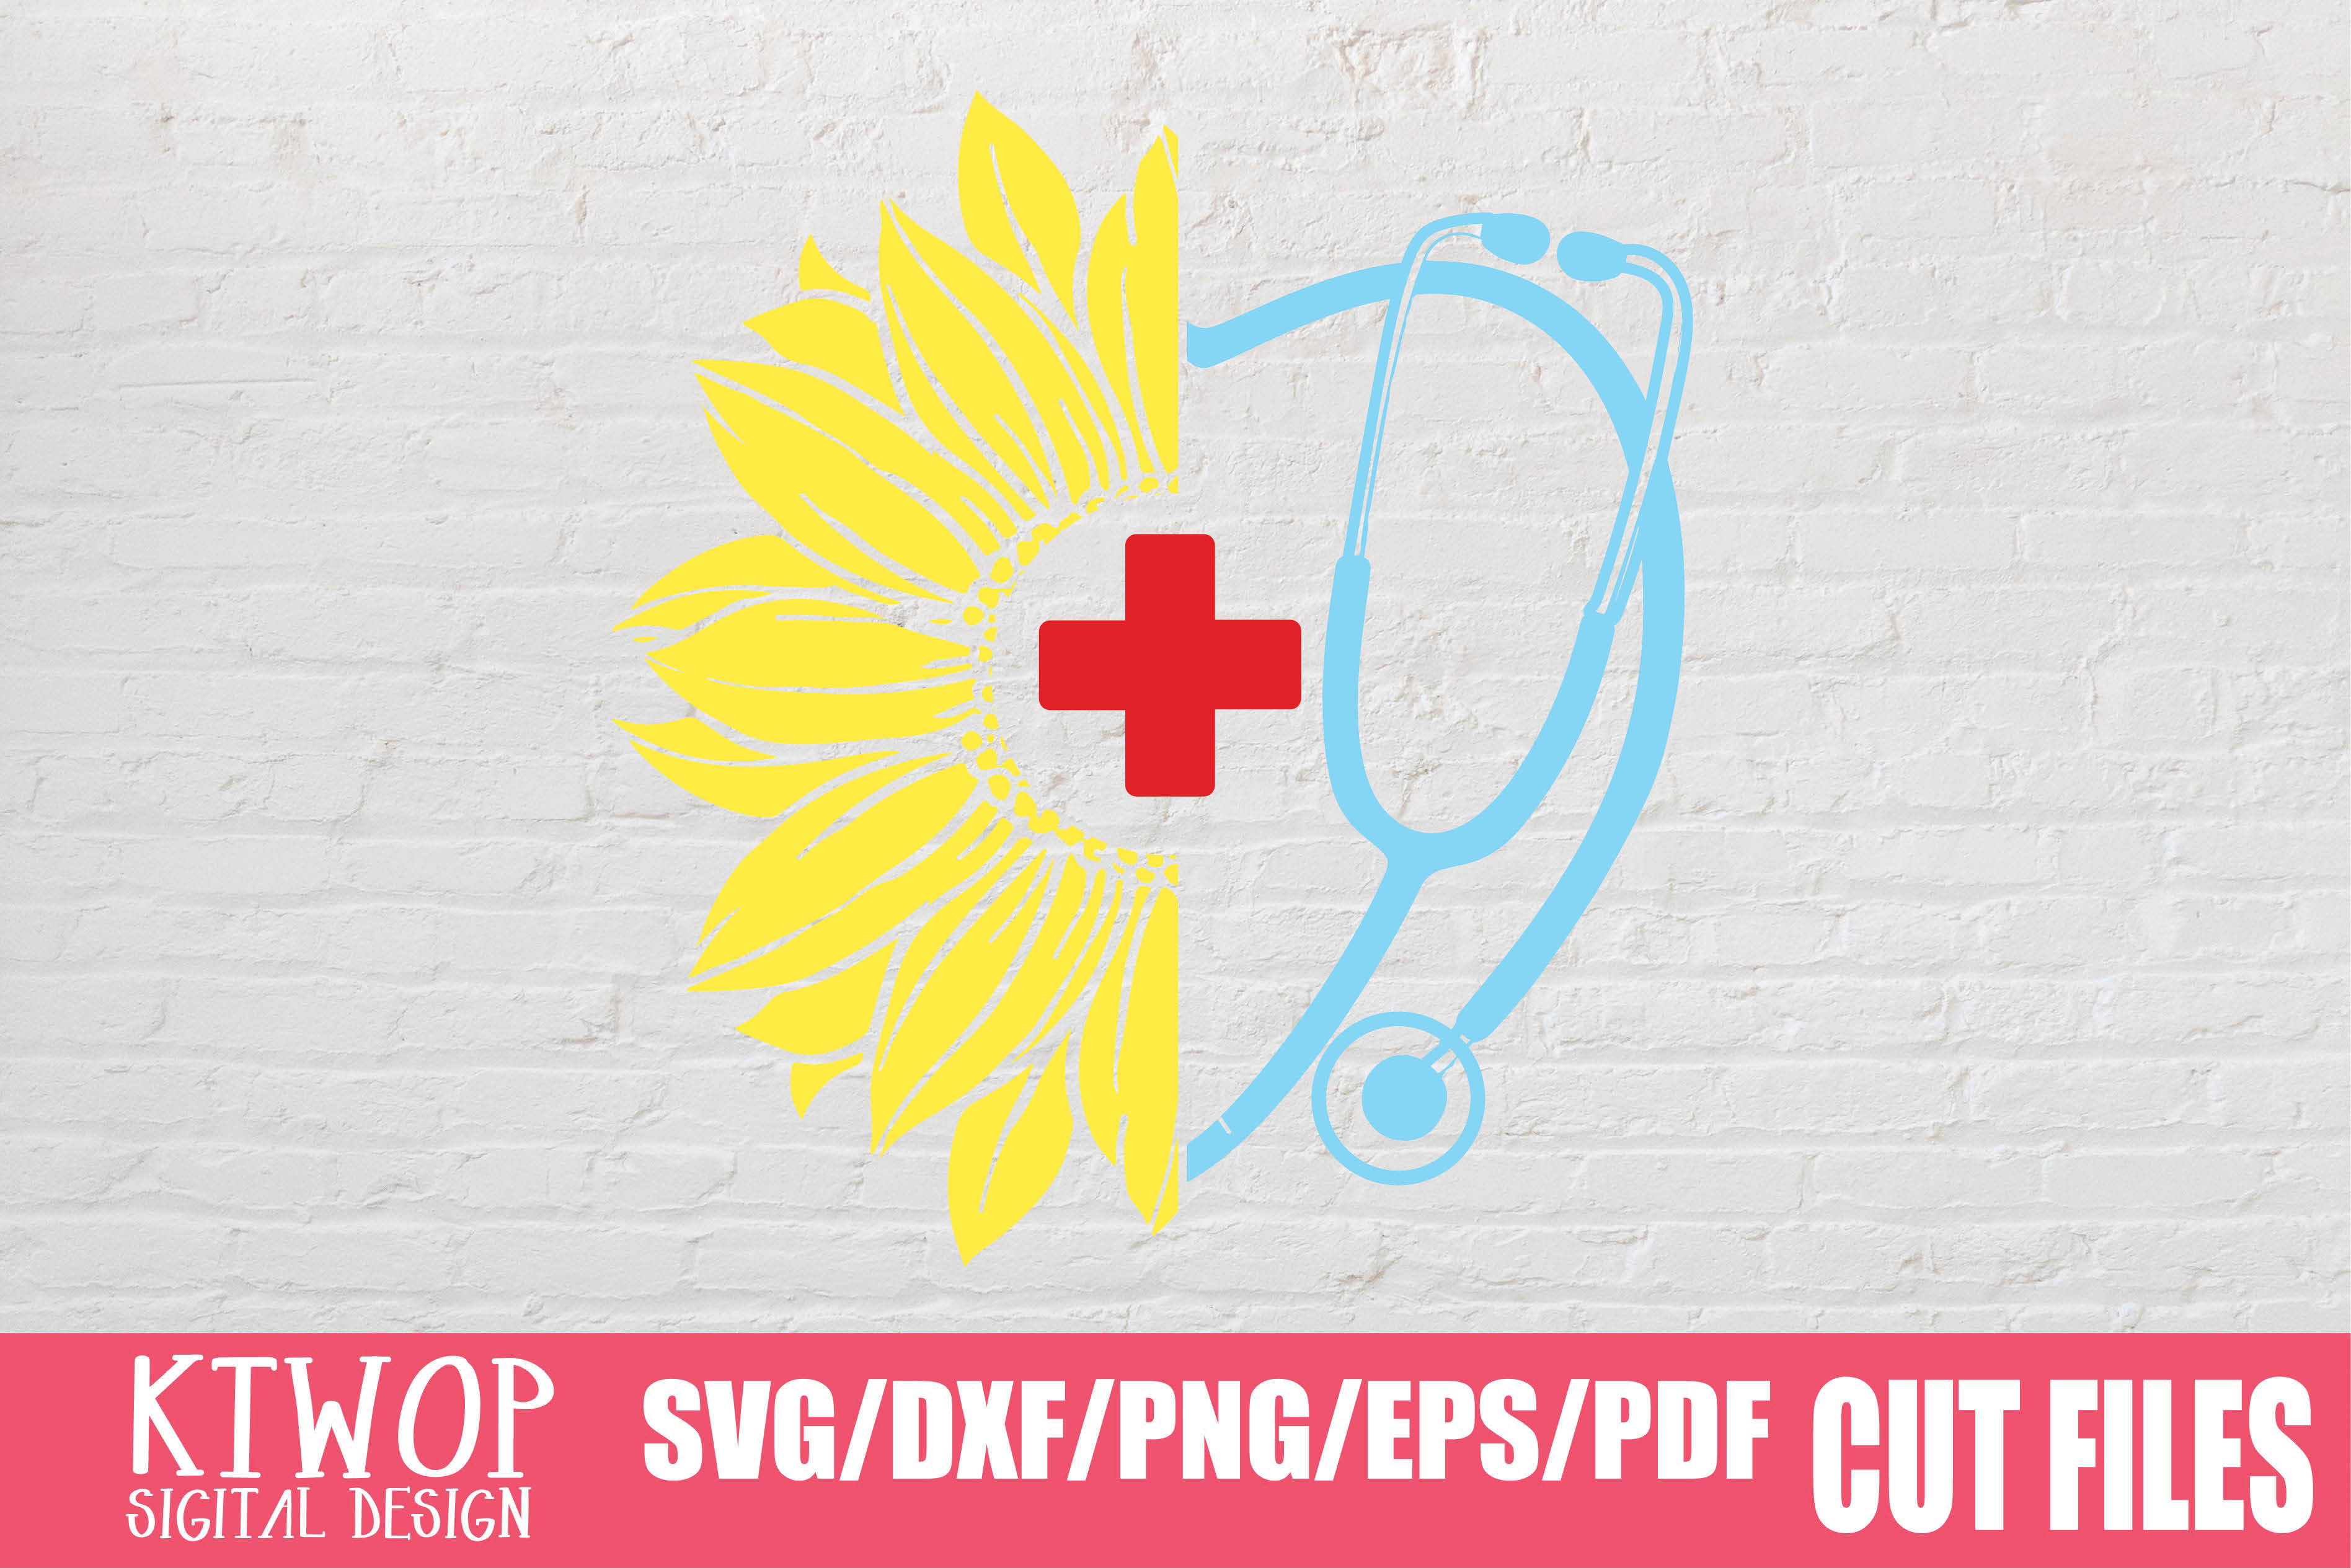 Download Free Sunflower Stethoscope Nurse Doctor 2020 Graphic By Ktwop for Cricut Explore, Silhouette and other cutting machines.